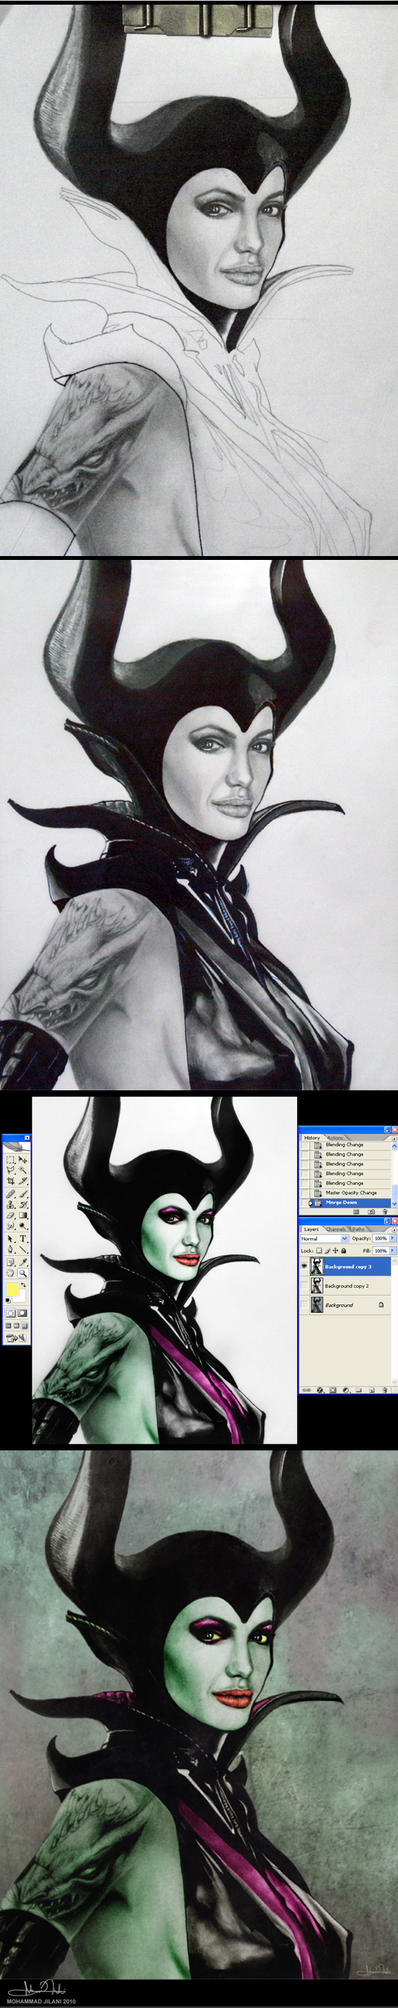 Maleficent-Process by Art-by-Jilani